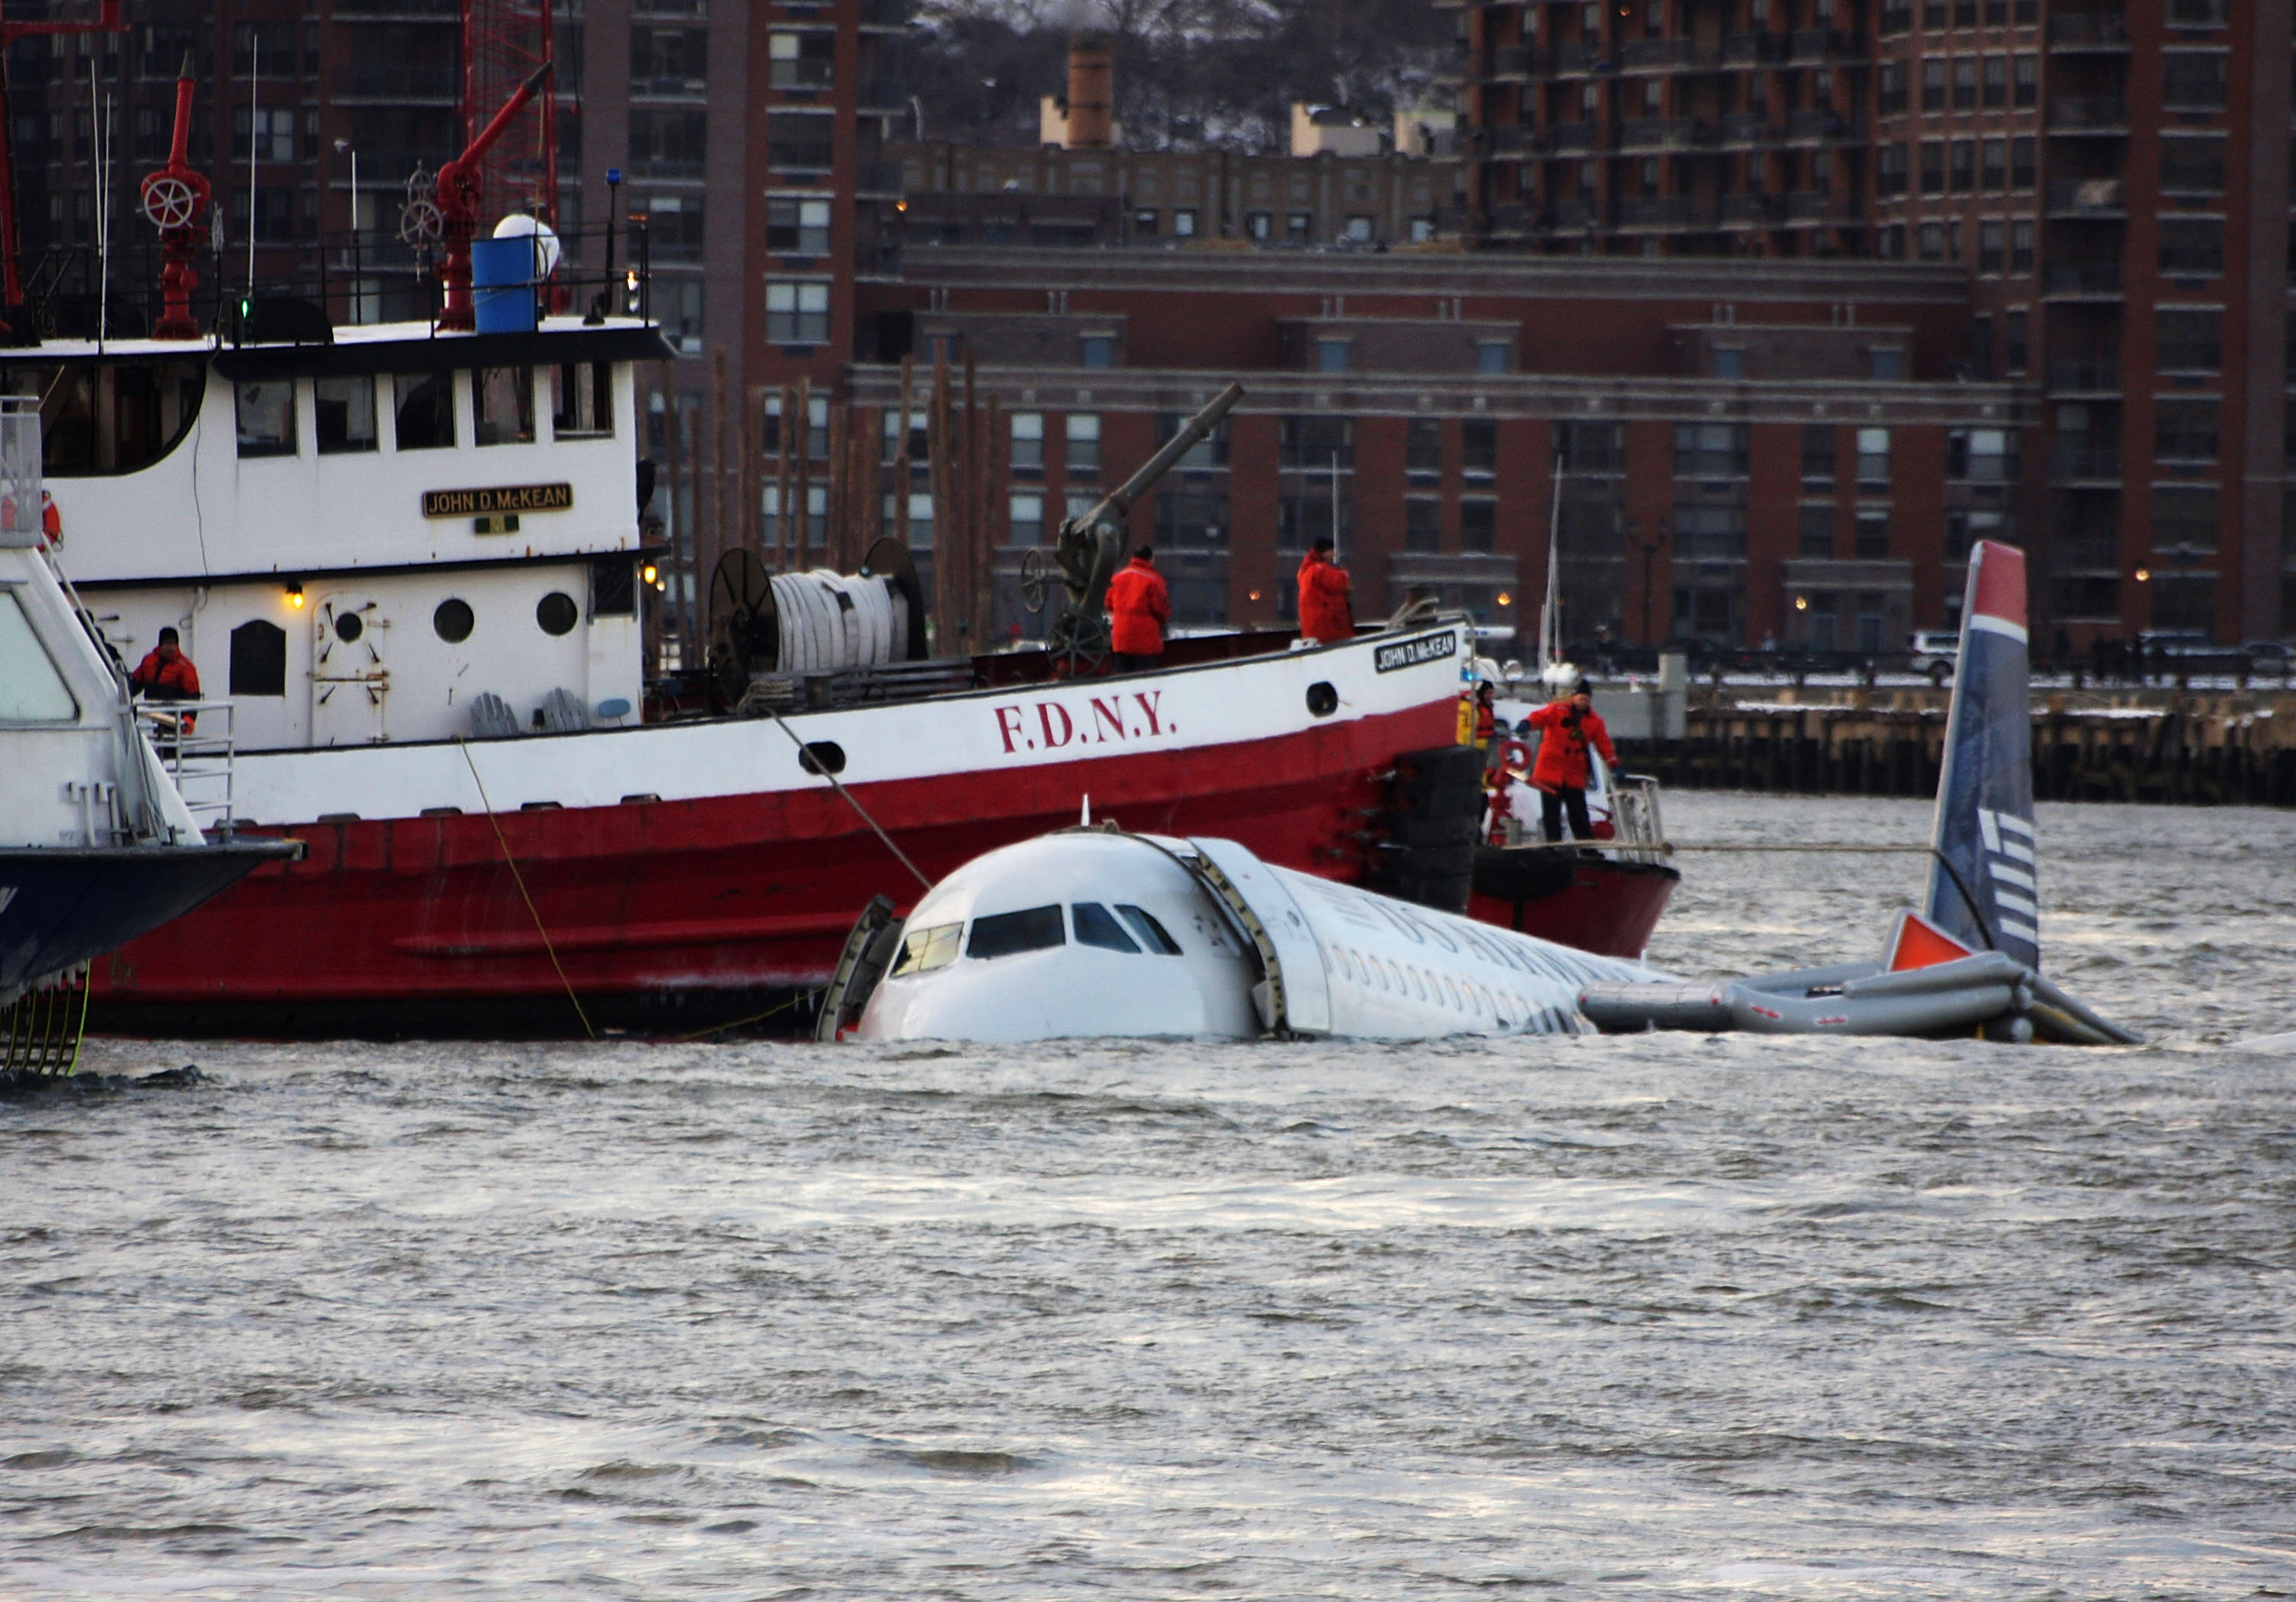 A New York City Fire Department boat floats next to a US Airways plane which crashed into the Hudson River in the afternoon on January 15, 2009 in New York City. (Jerritt Clark/Getty Images)